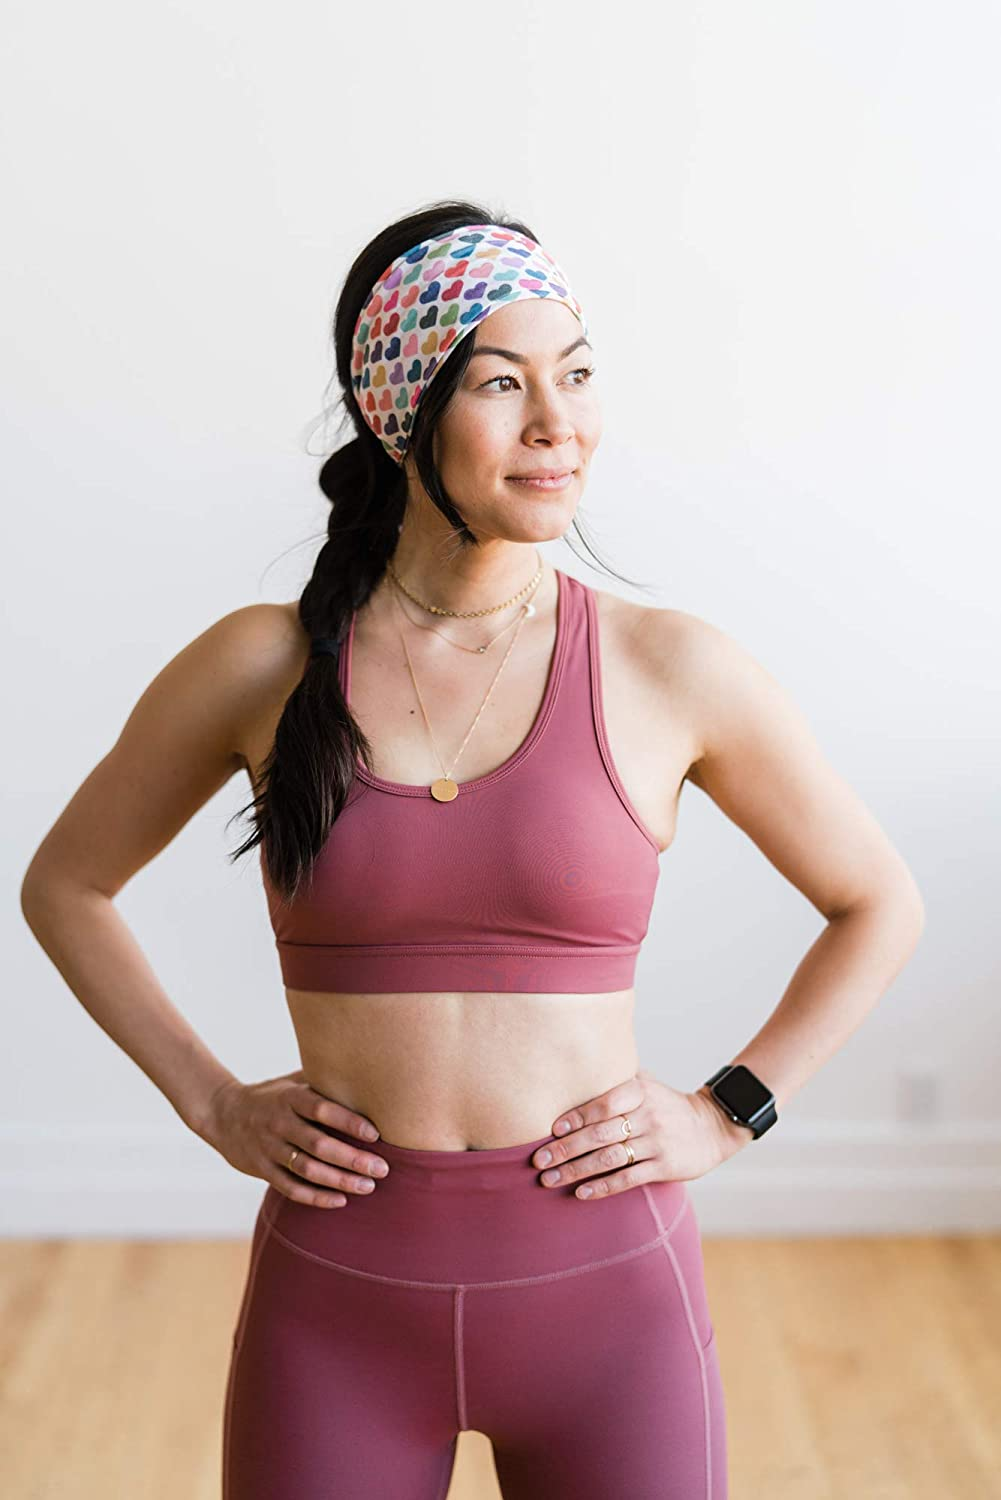 Maven Thread Womens Headband Yoga Running Exercise Sports Workout Athletic Gym Wide Sweat Wicking Stretchy No Slip 2 Pack Set Hearts and Purple Solid Crush